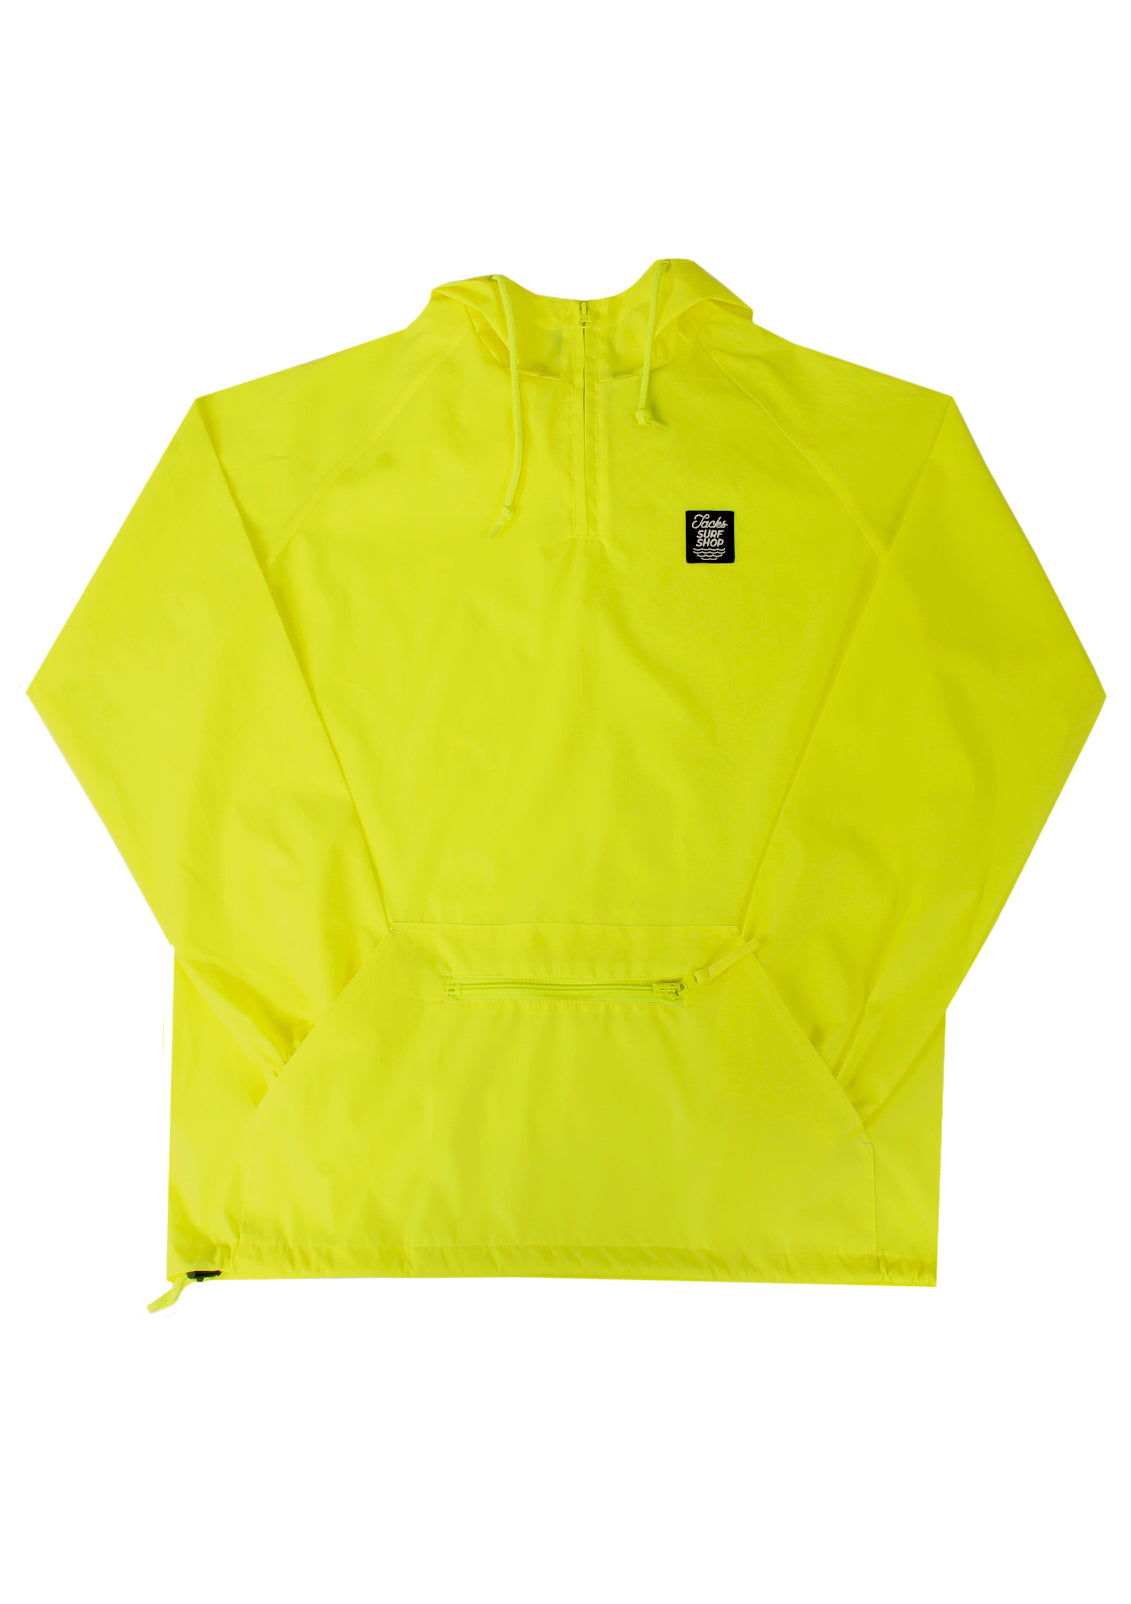 Jacks Surfboards Thumbprint Anorak Jacket